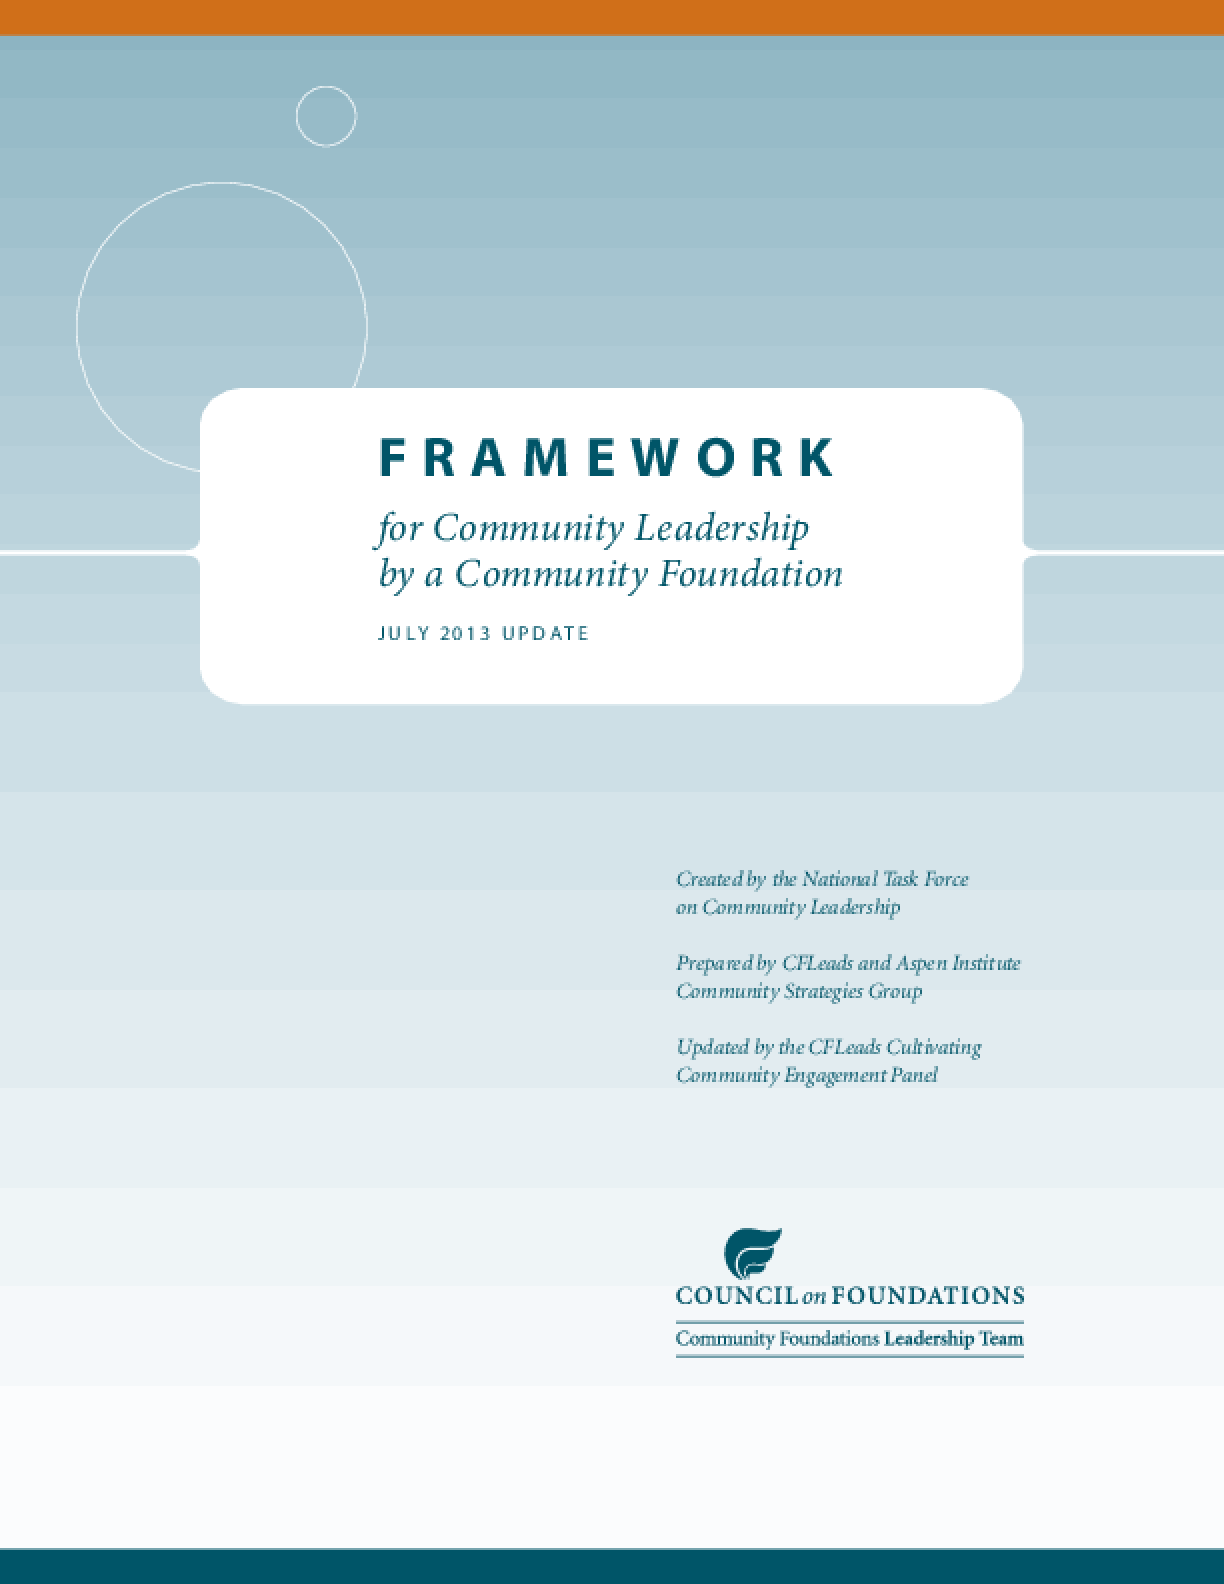 Framework for Community Leadership by a Community Foundation